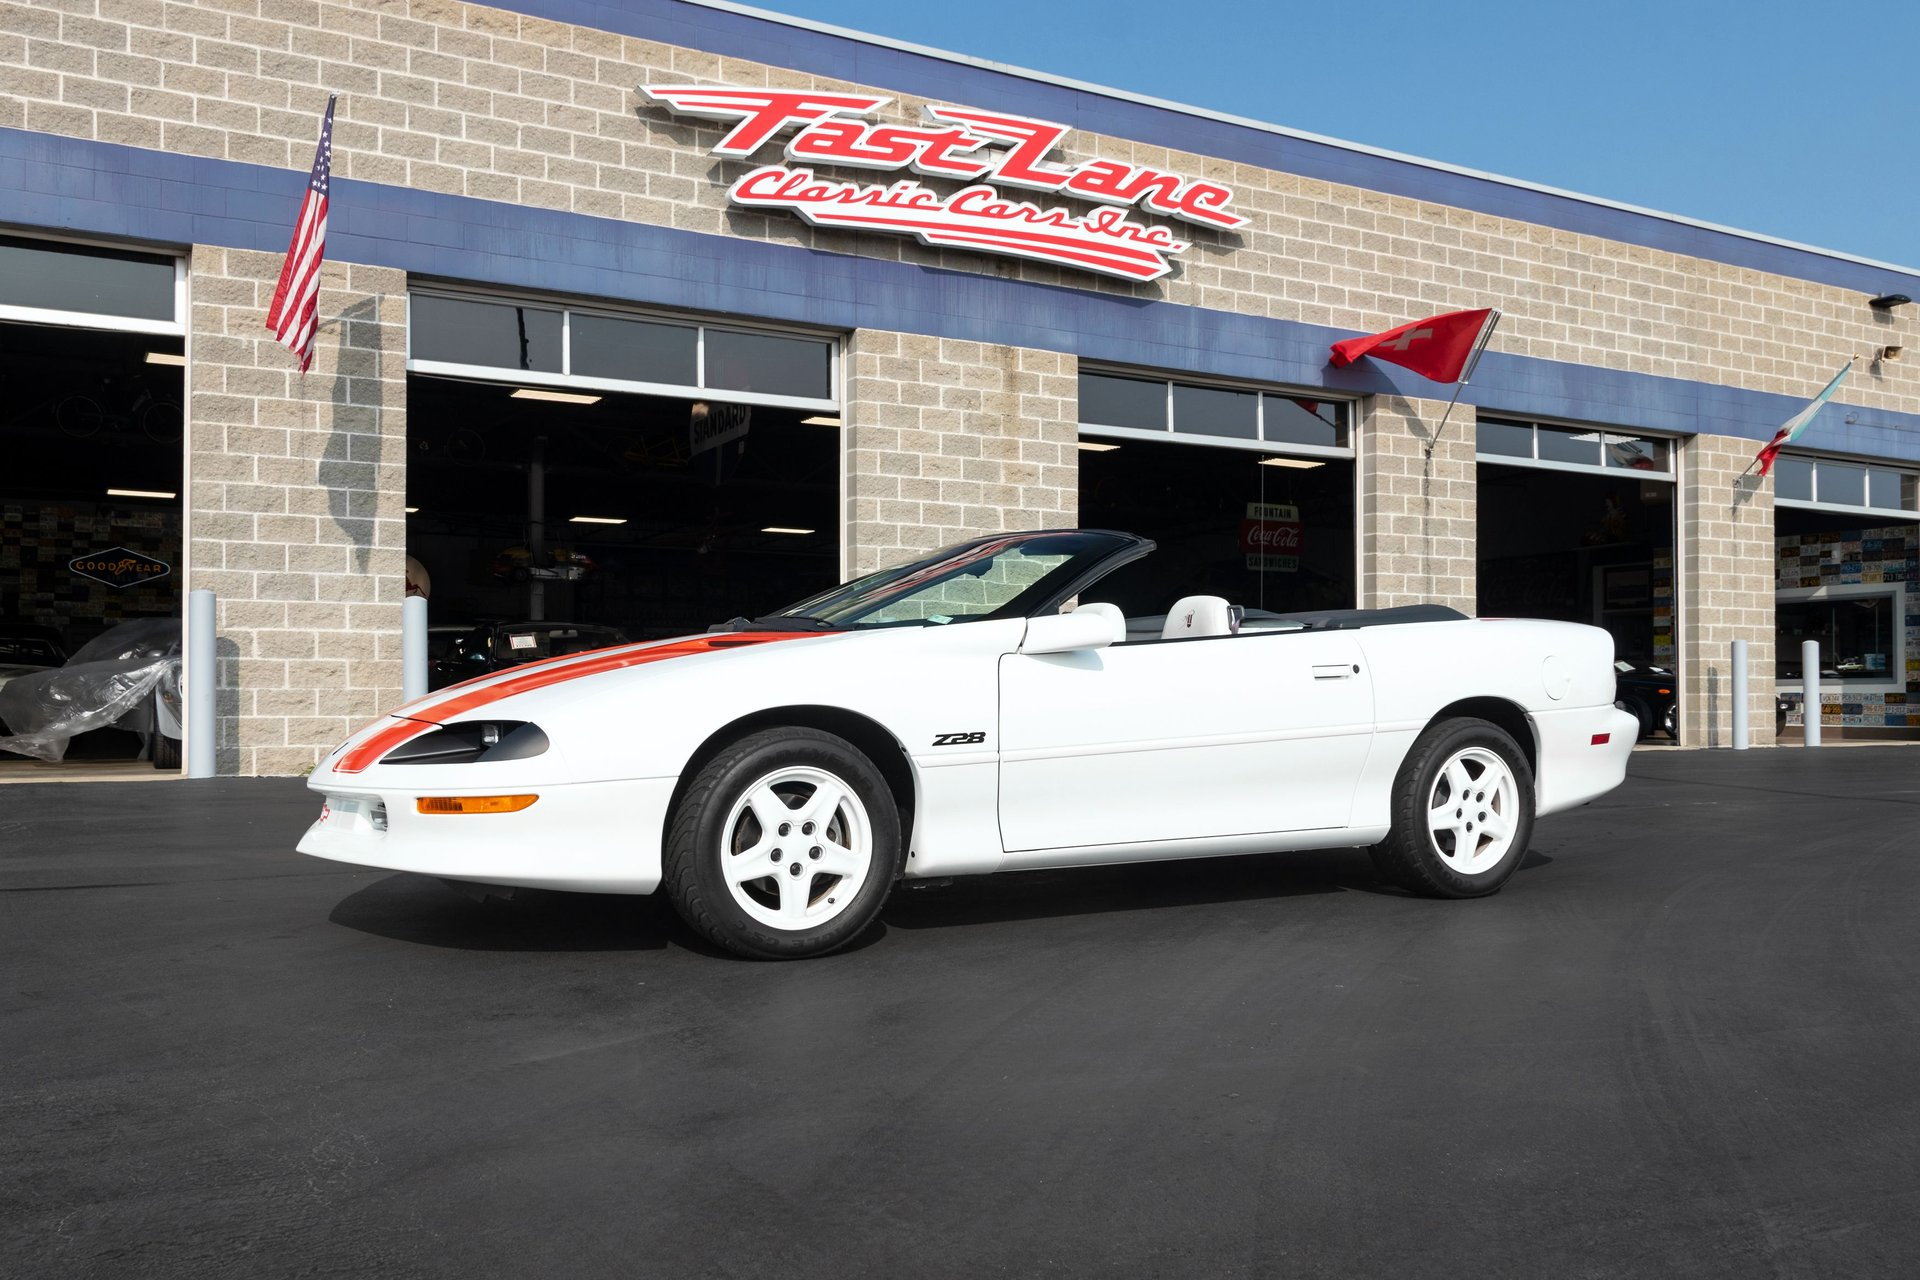 1997 chevrolet camaro z 28 30th anniversary